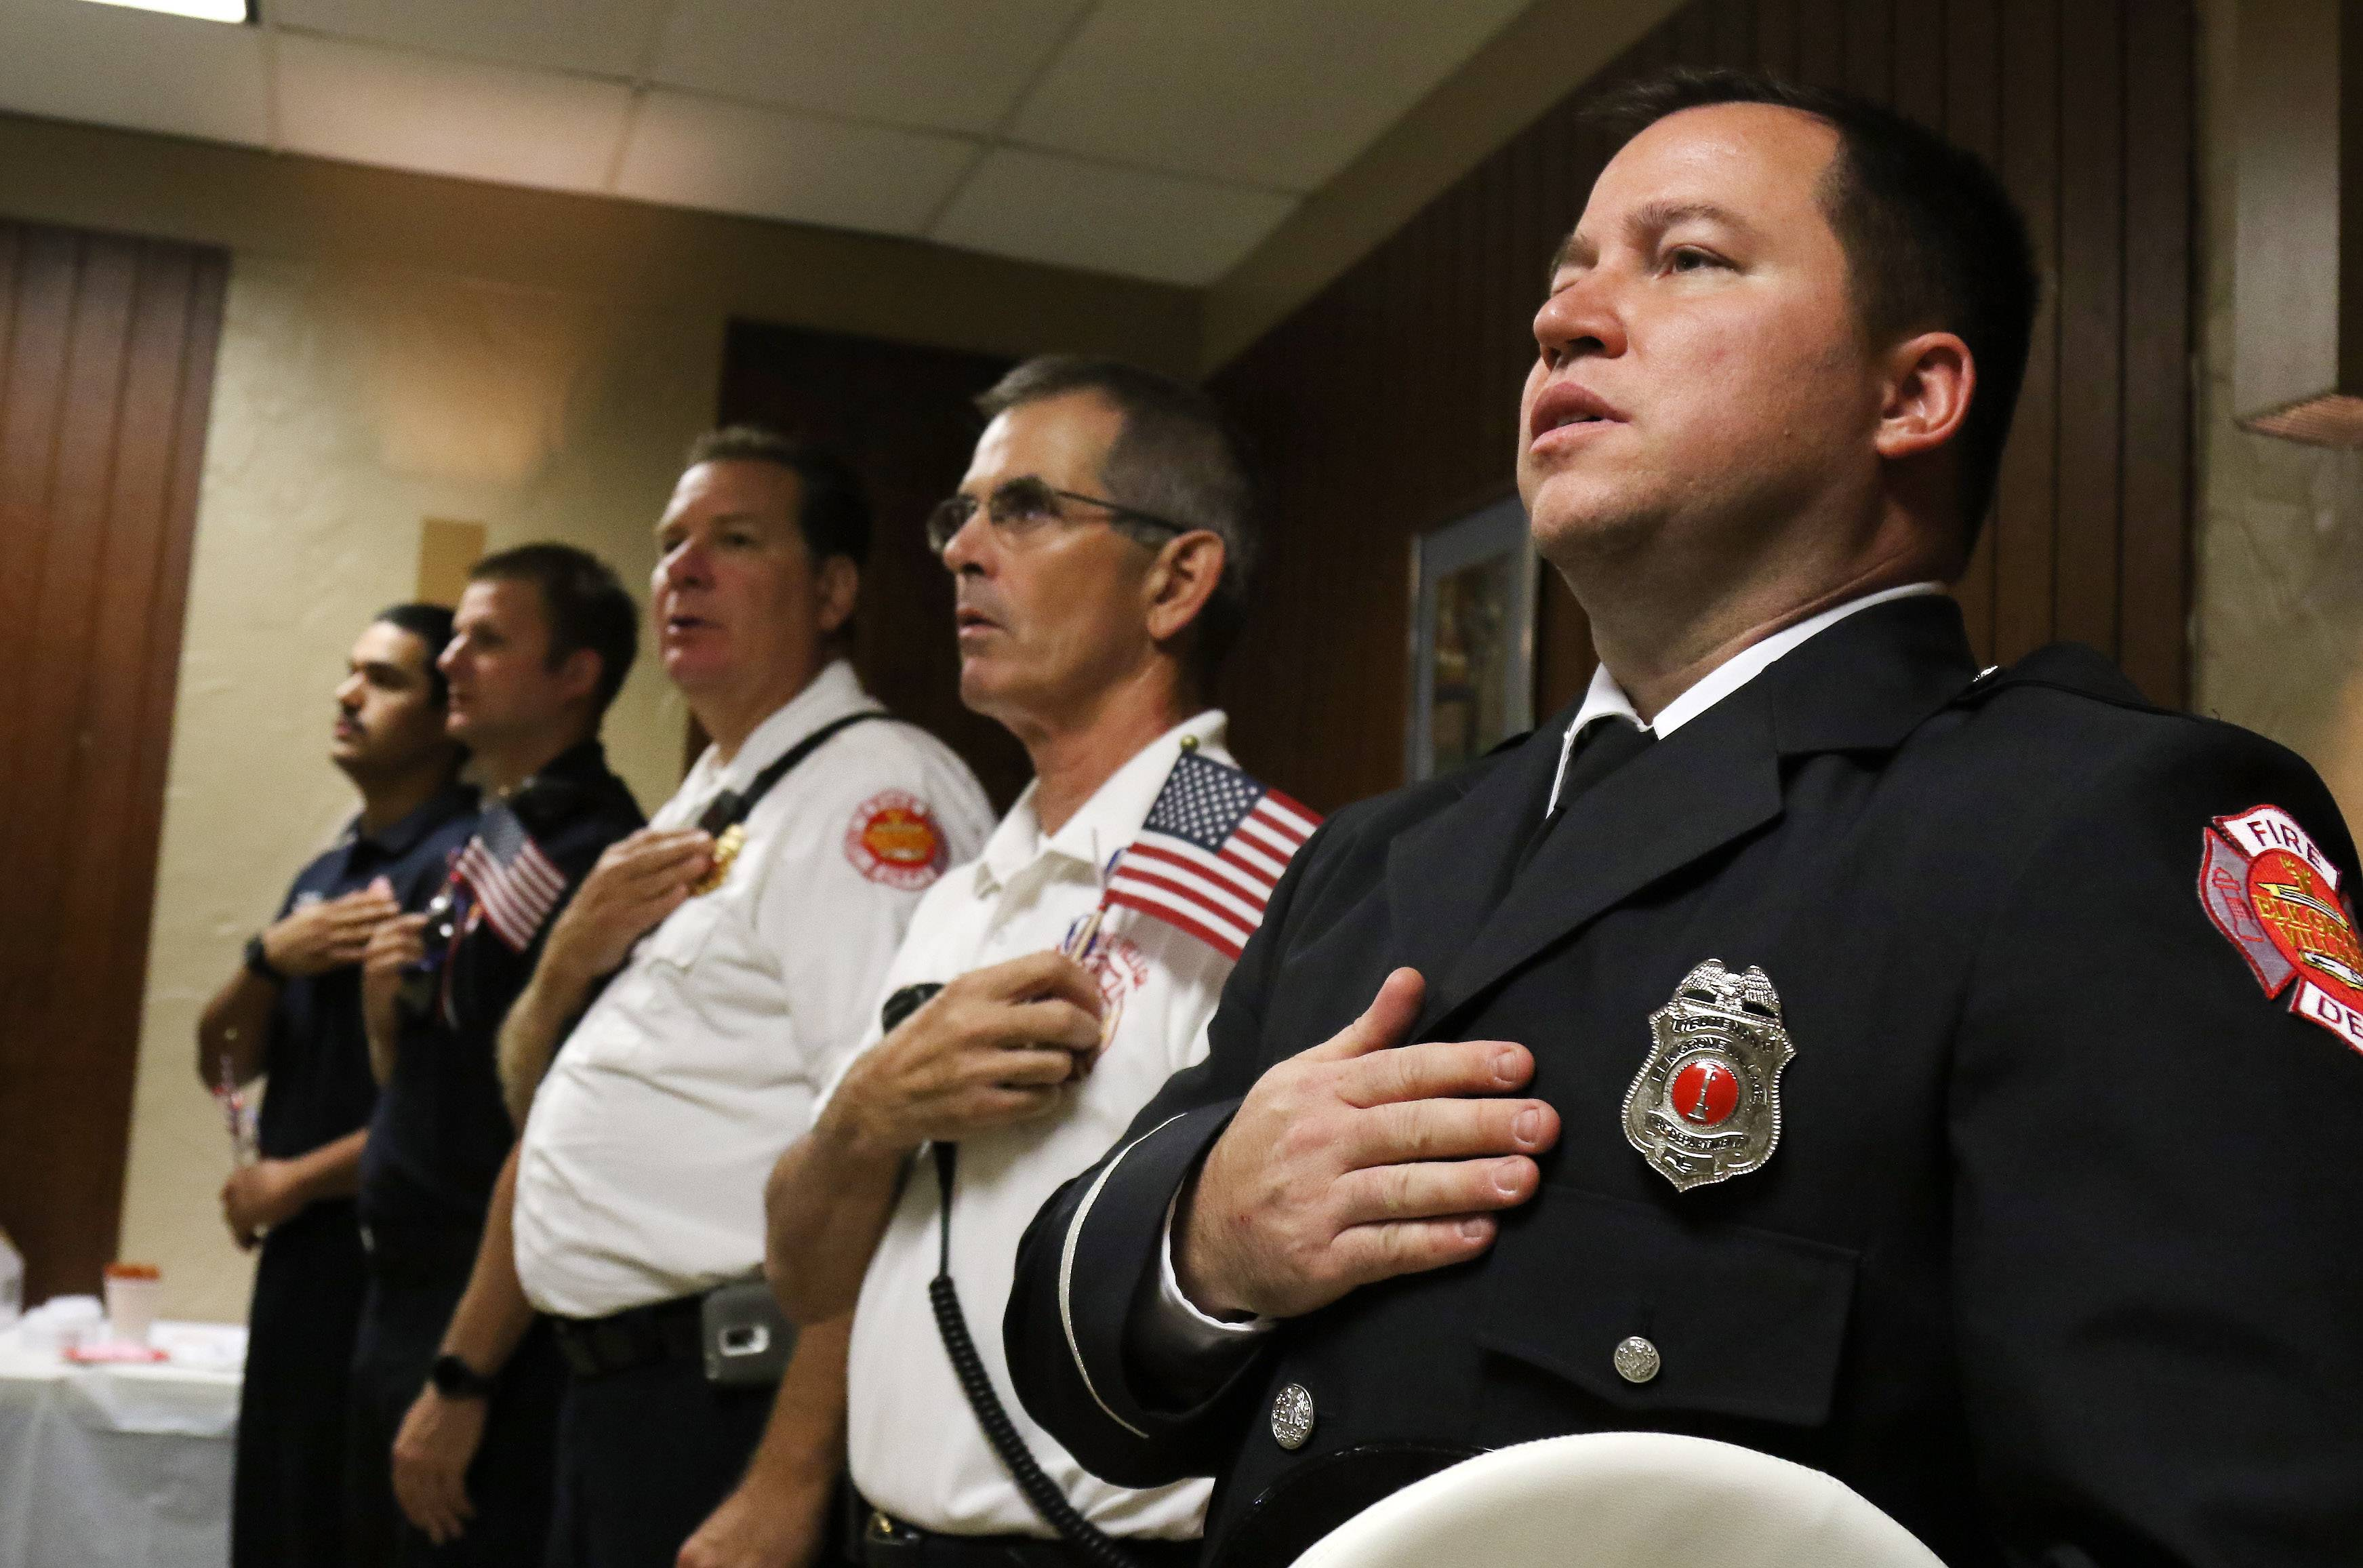 Elk Grove Village Fire Dept. Lt. David Hoppe, right, and Lt. Rick Krieger joins other members of the fire department in the Pledge of Allegiance during the Elk Grove Village September 11, 15th Anniversary Celebration on Sunday at the VFW Post 9248 hall. In addition to the VFW, the Community Character Coalition, the Heart of a Marine Foundation, Shennyo-en Temple and the Elk Grove Interfaith Council sponsored the event.